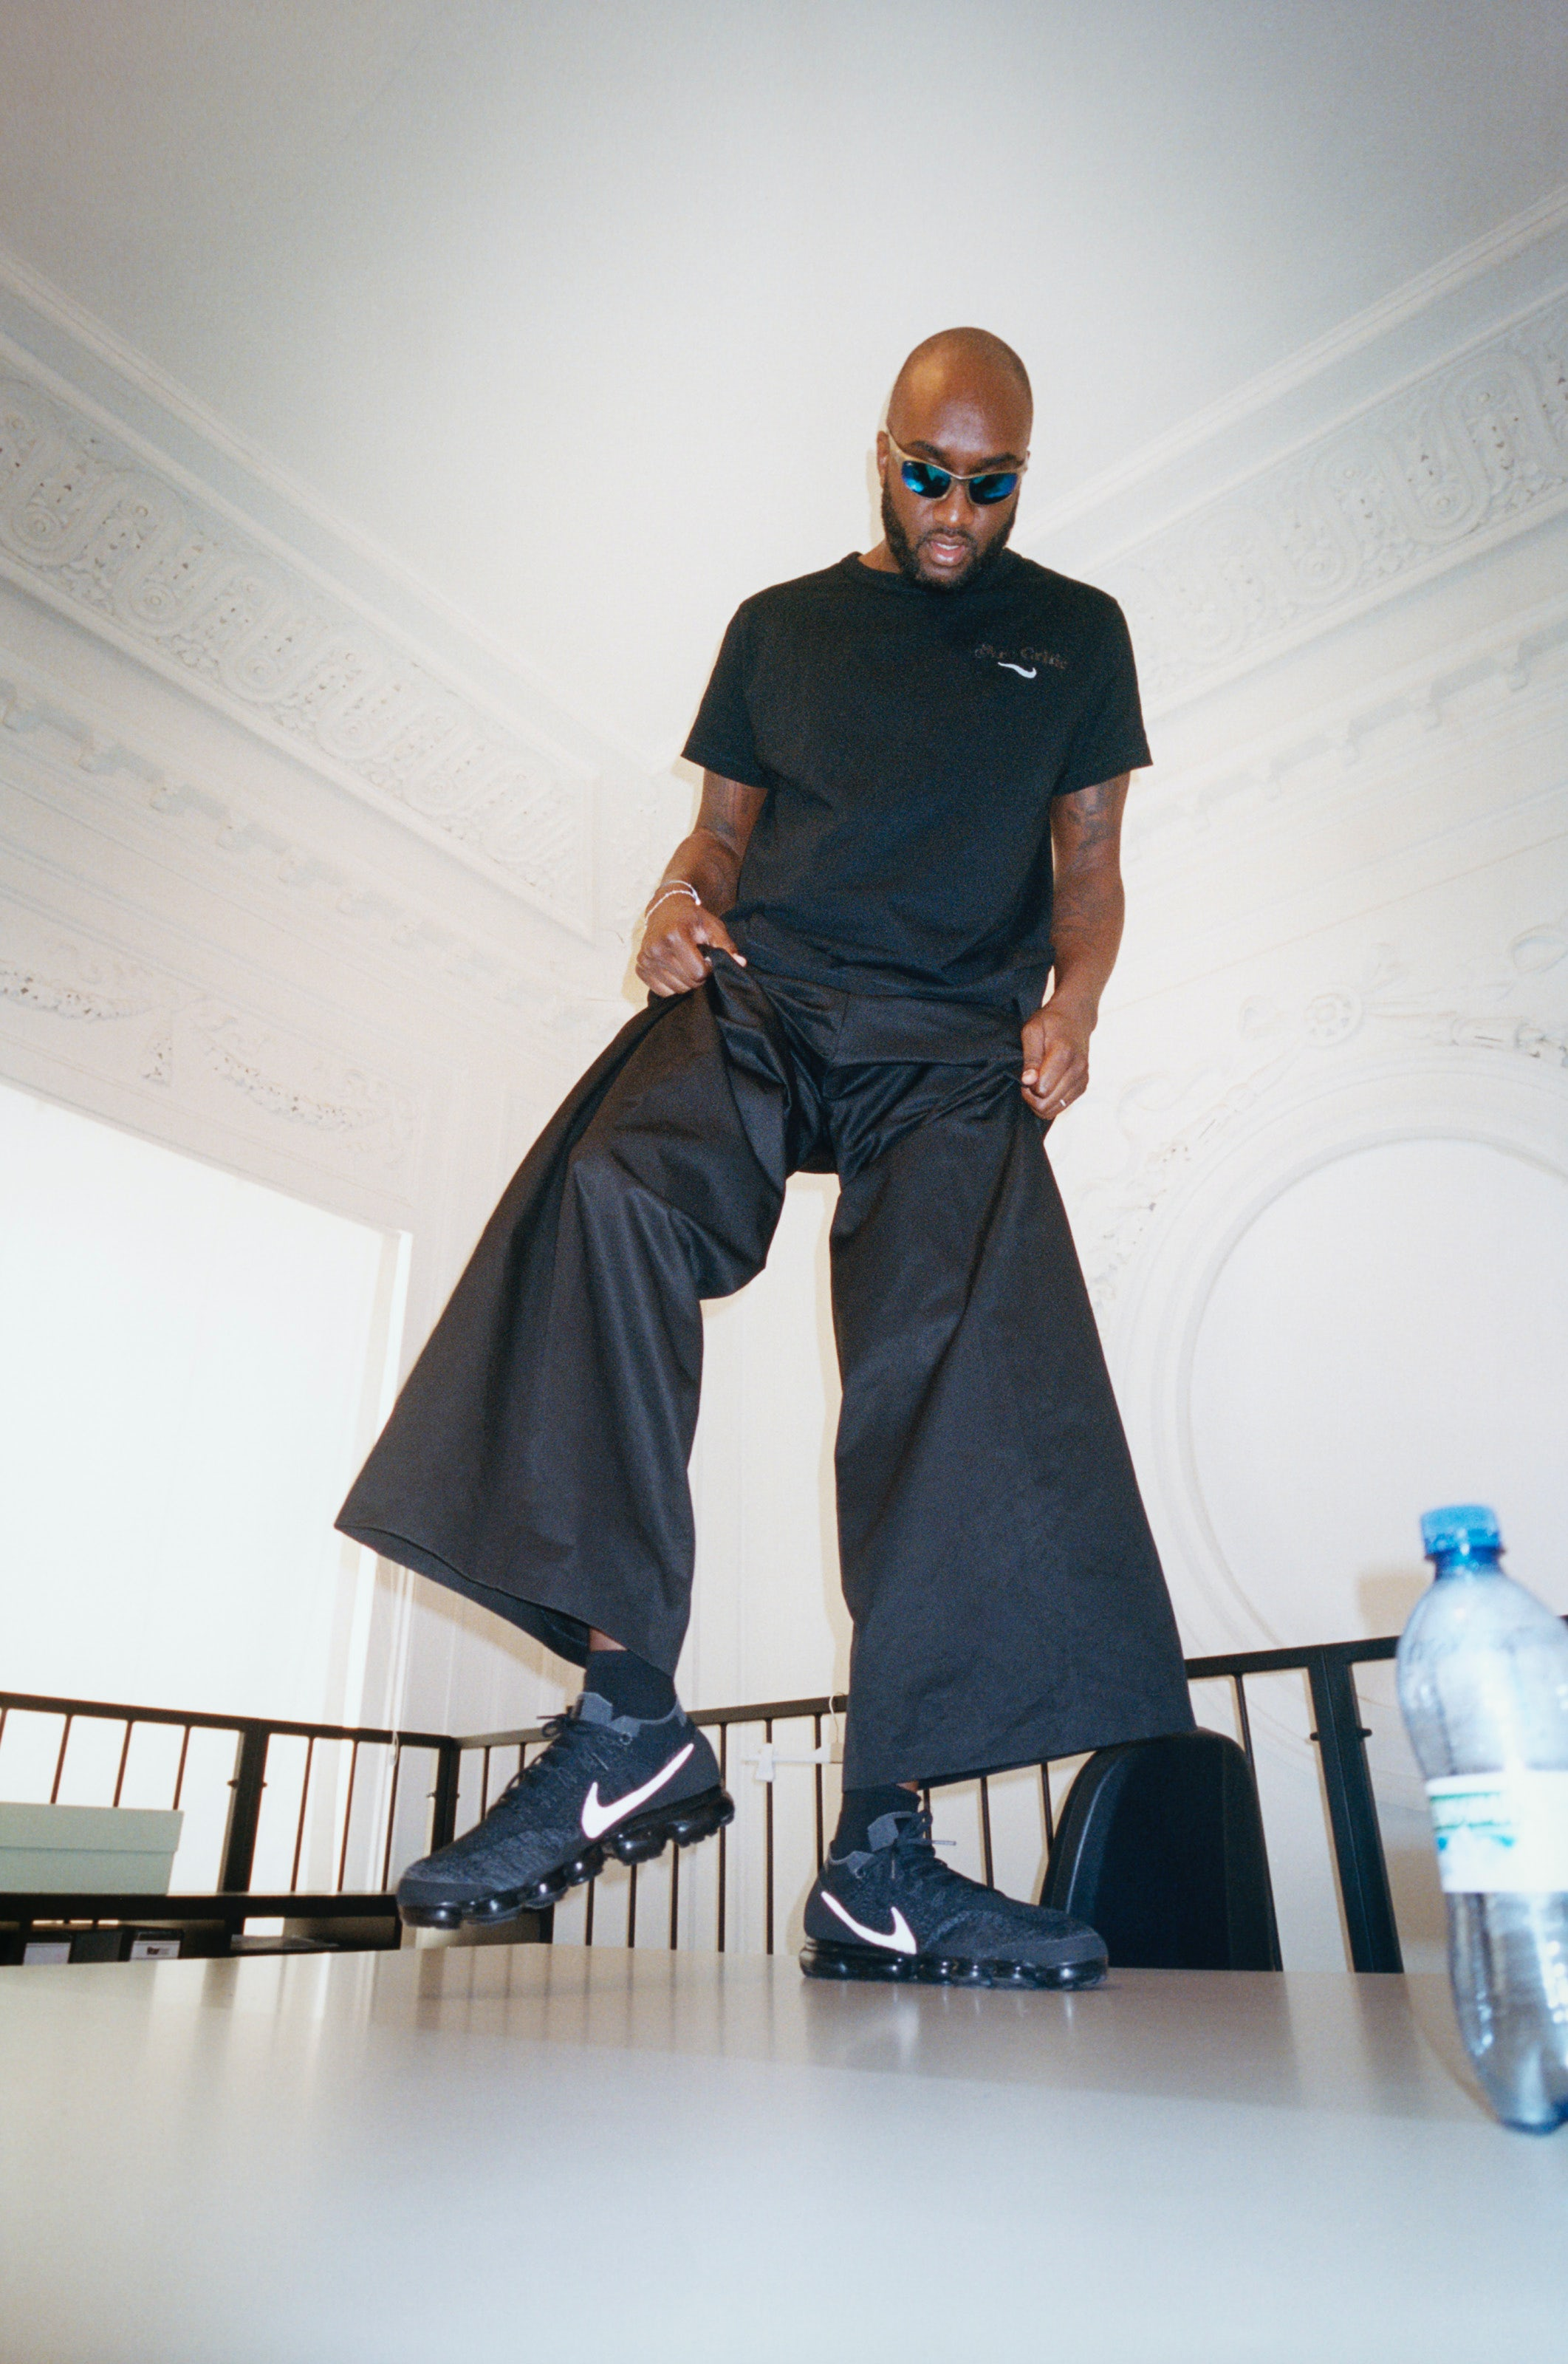 Off-White founder and creative director Virgil Abloh | Source: Courtesy